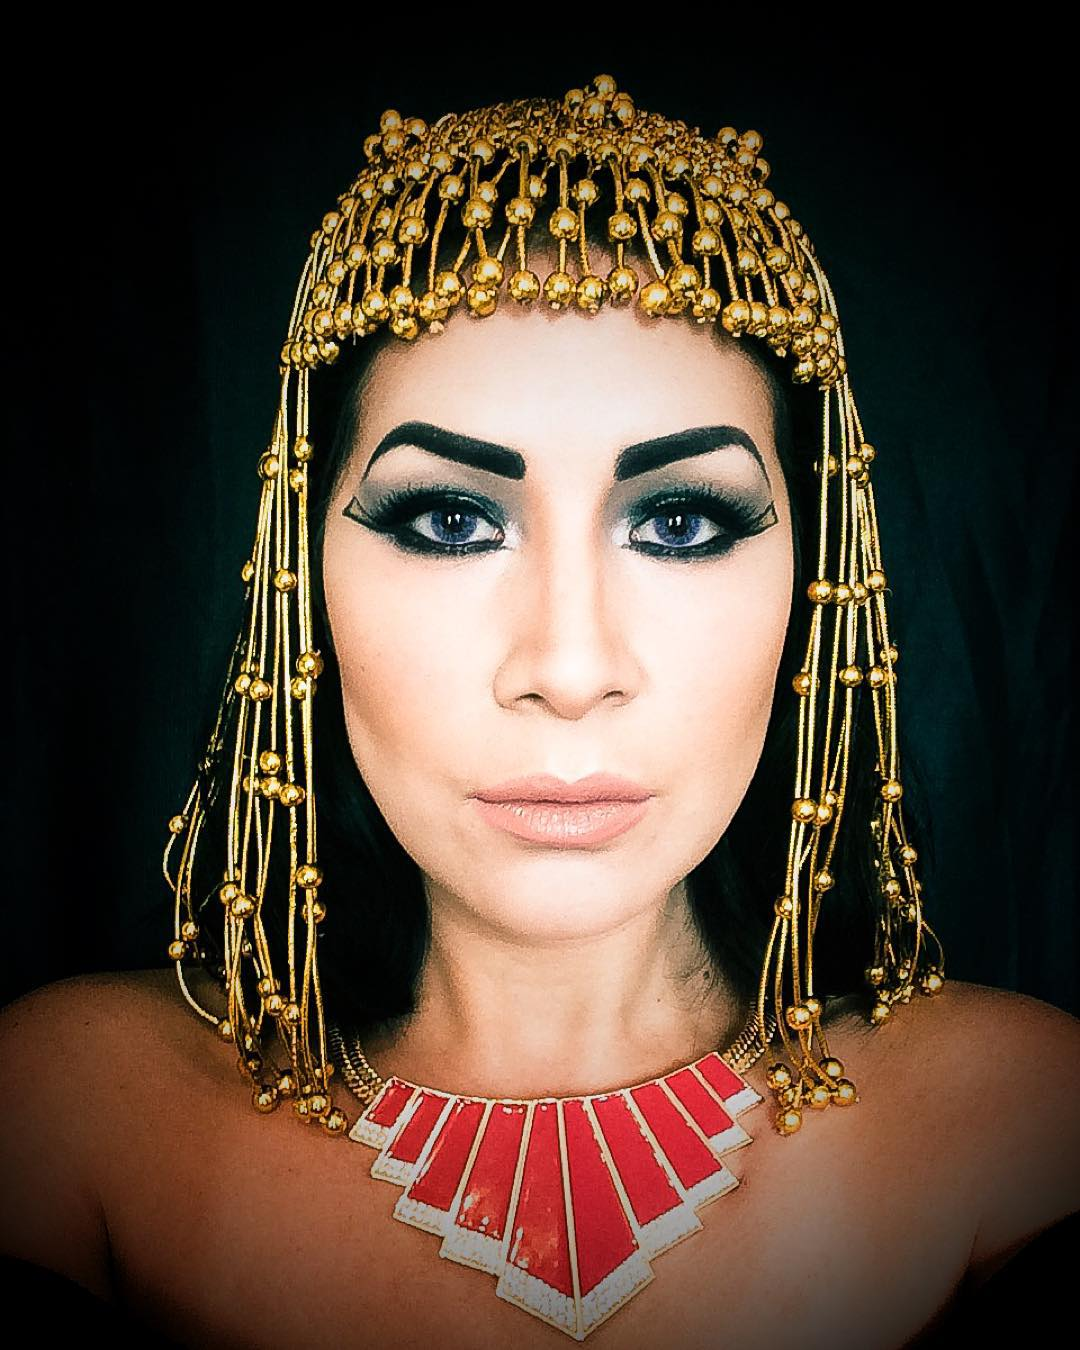 Classic Makeup of Cleopatra